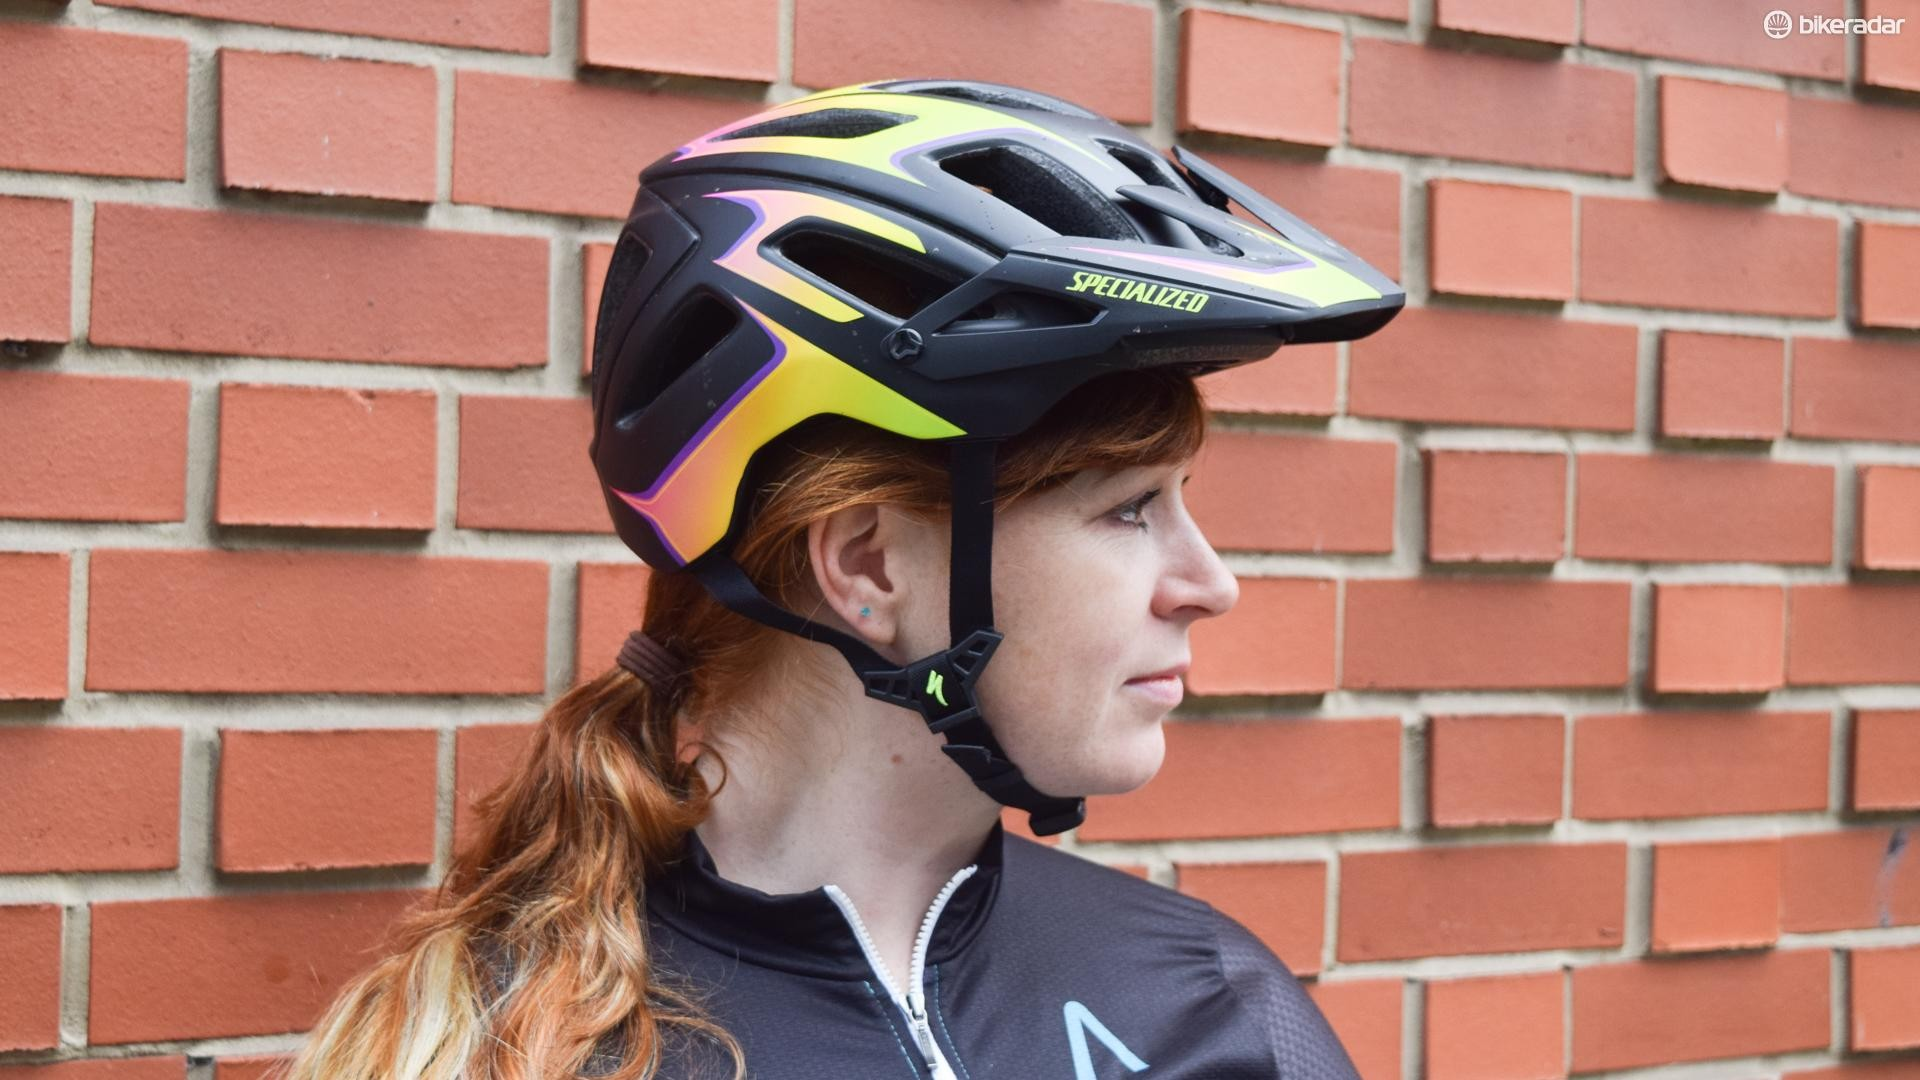 The Ambush Comp helmet from Specialized, with low coverage at the back for increased protection